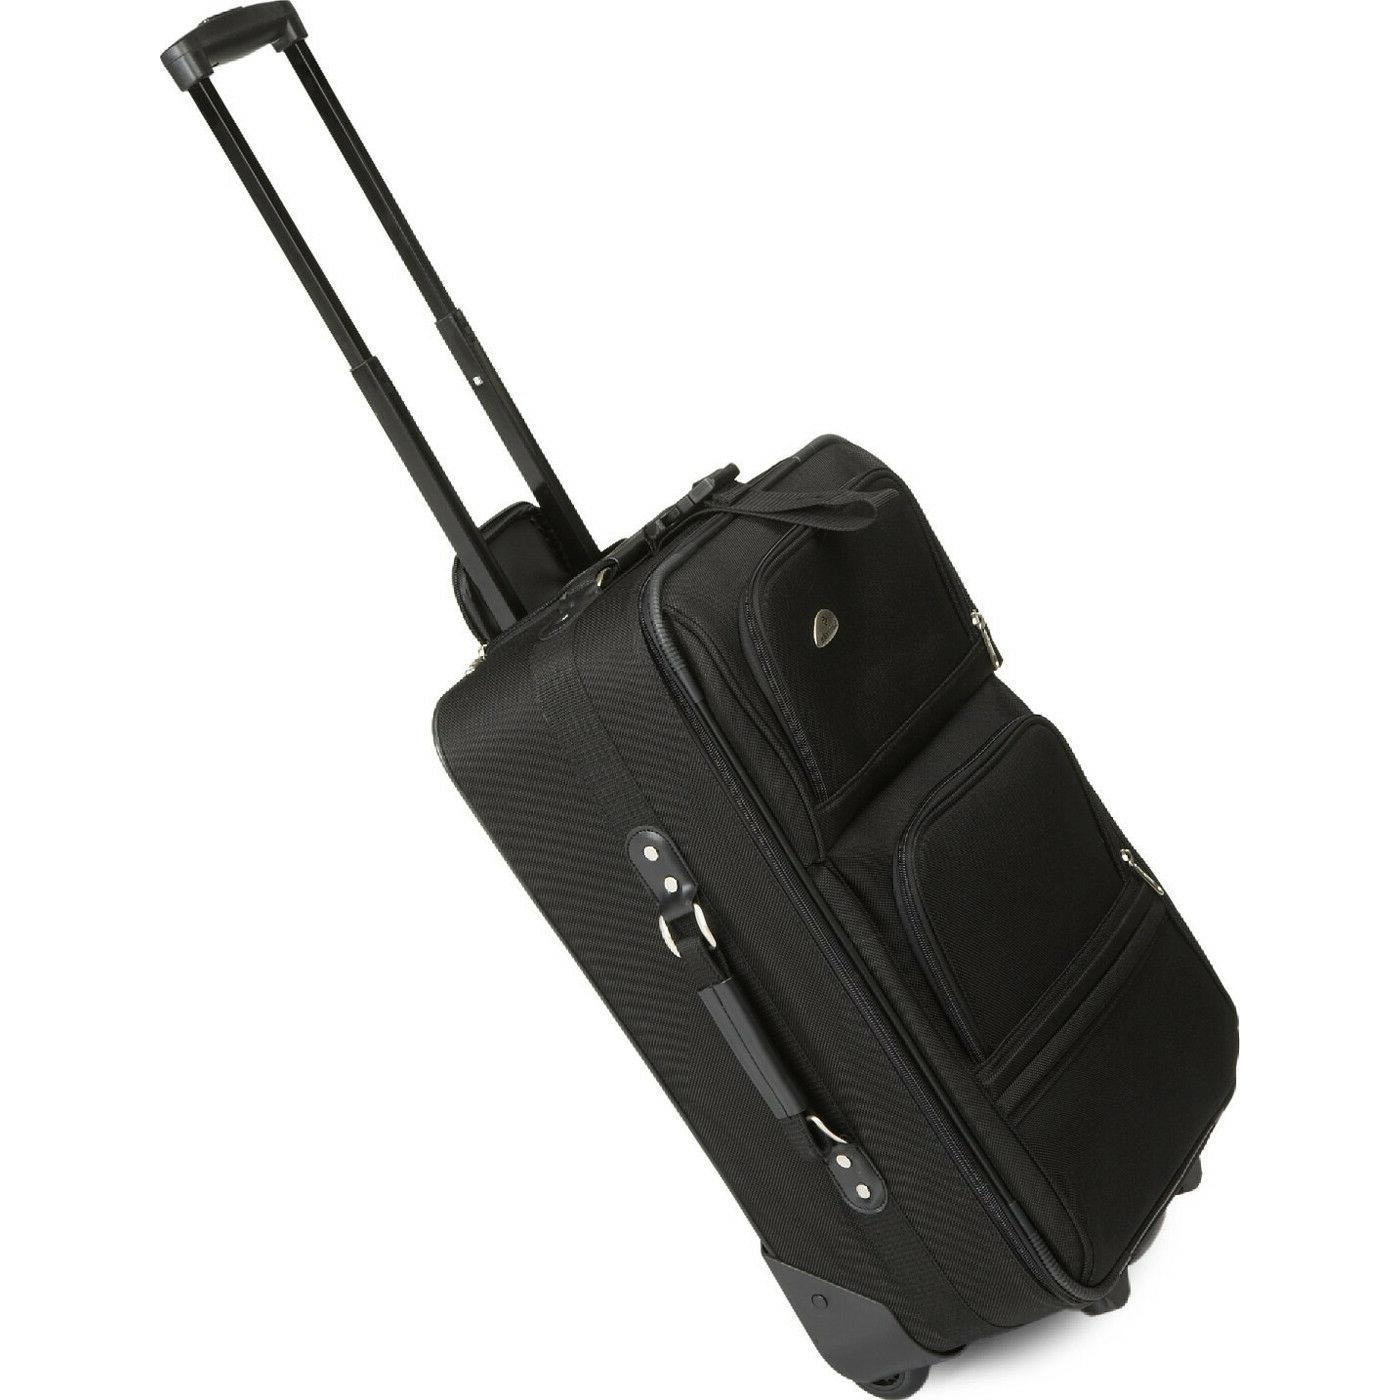 Samsonite 5 Luggage - 25 Inch, 20 & More